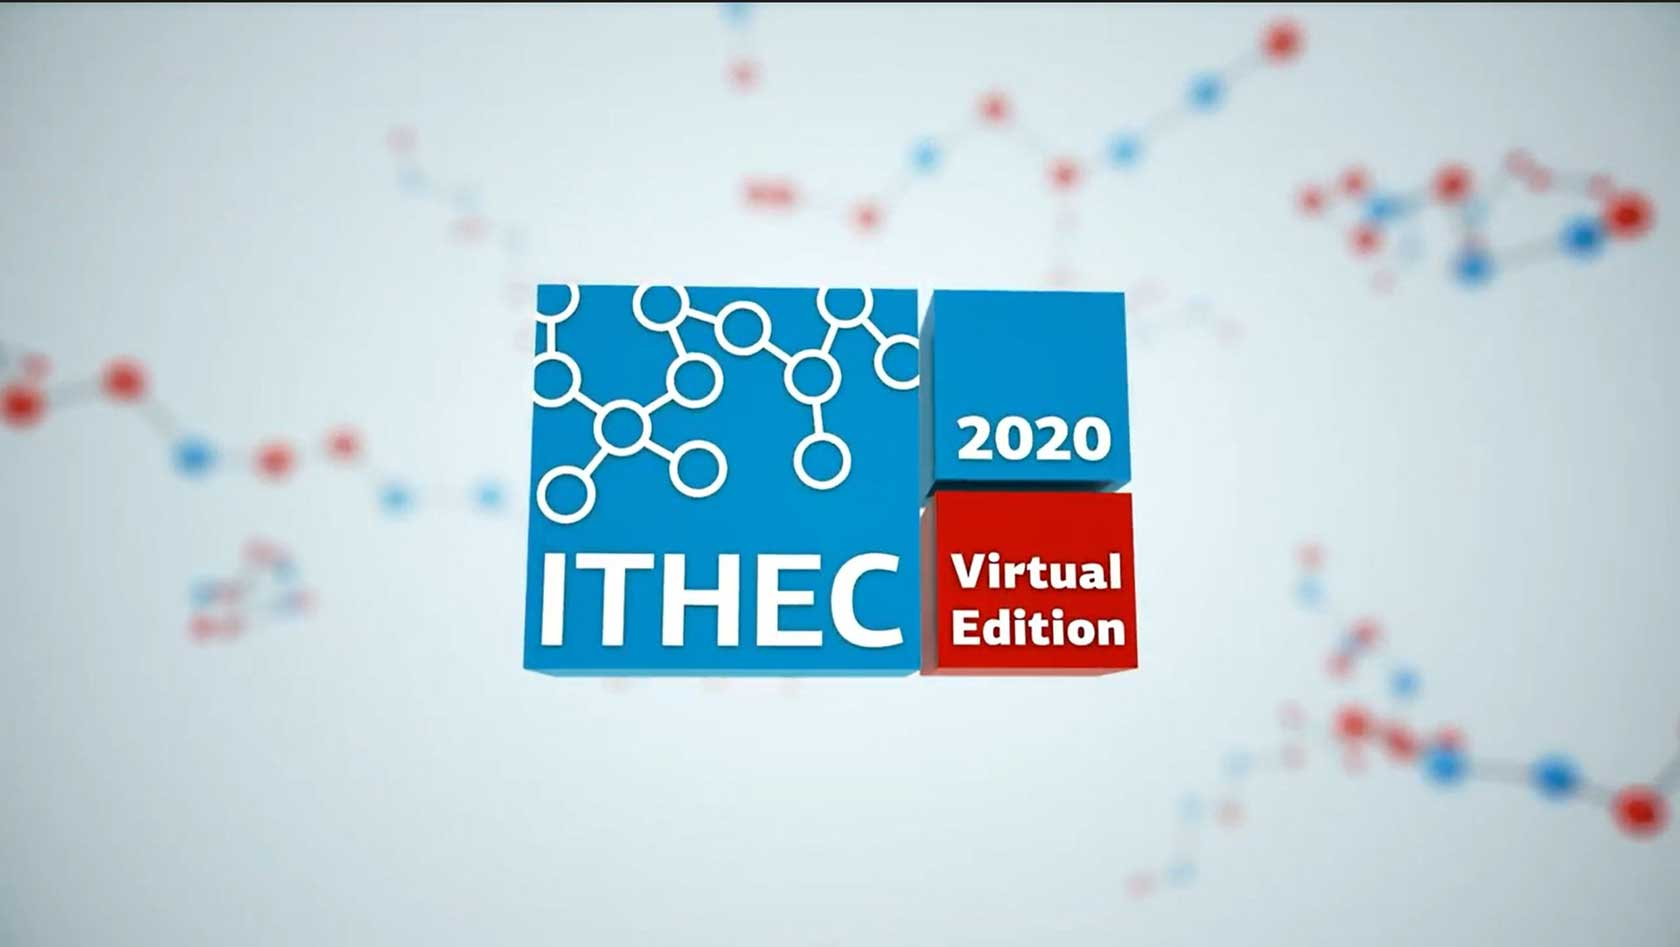 ITHEC 2020 Virtual Edition - A PIRATEx Online Event Agency Production